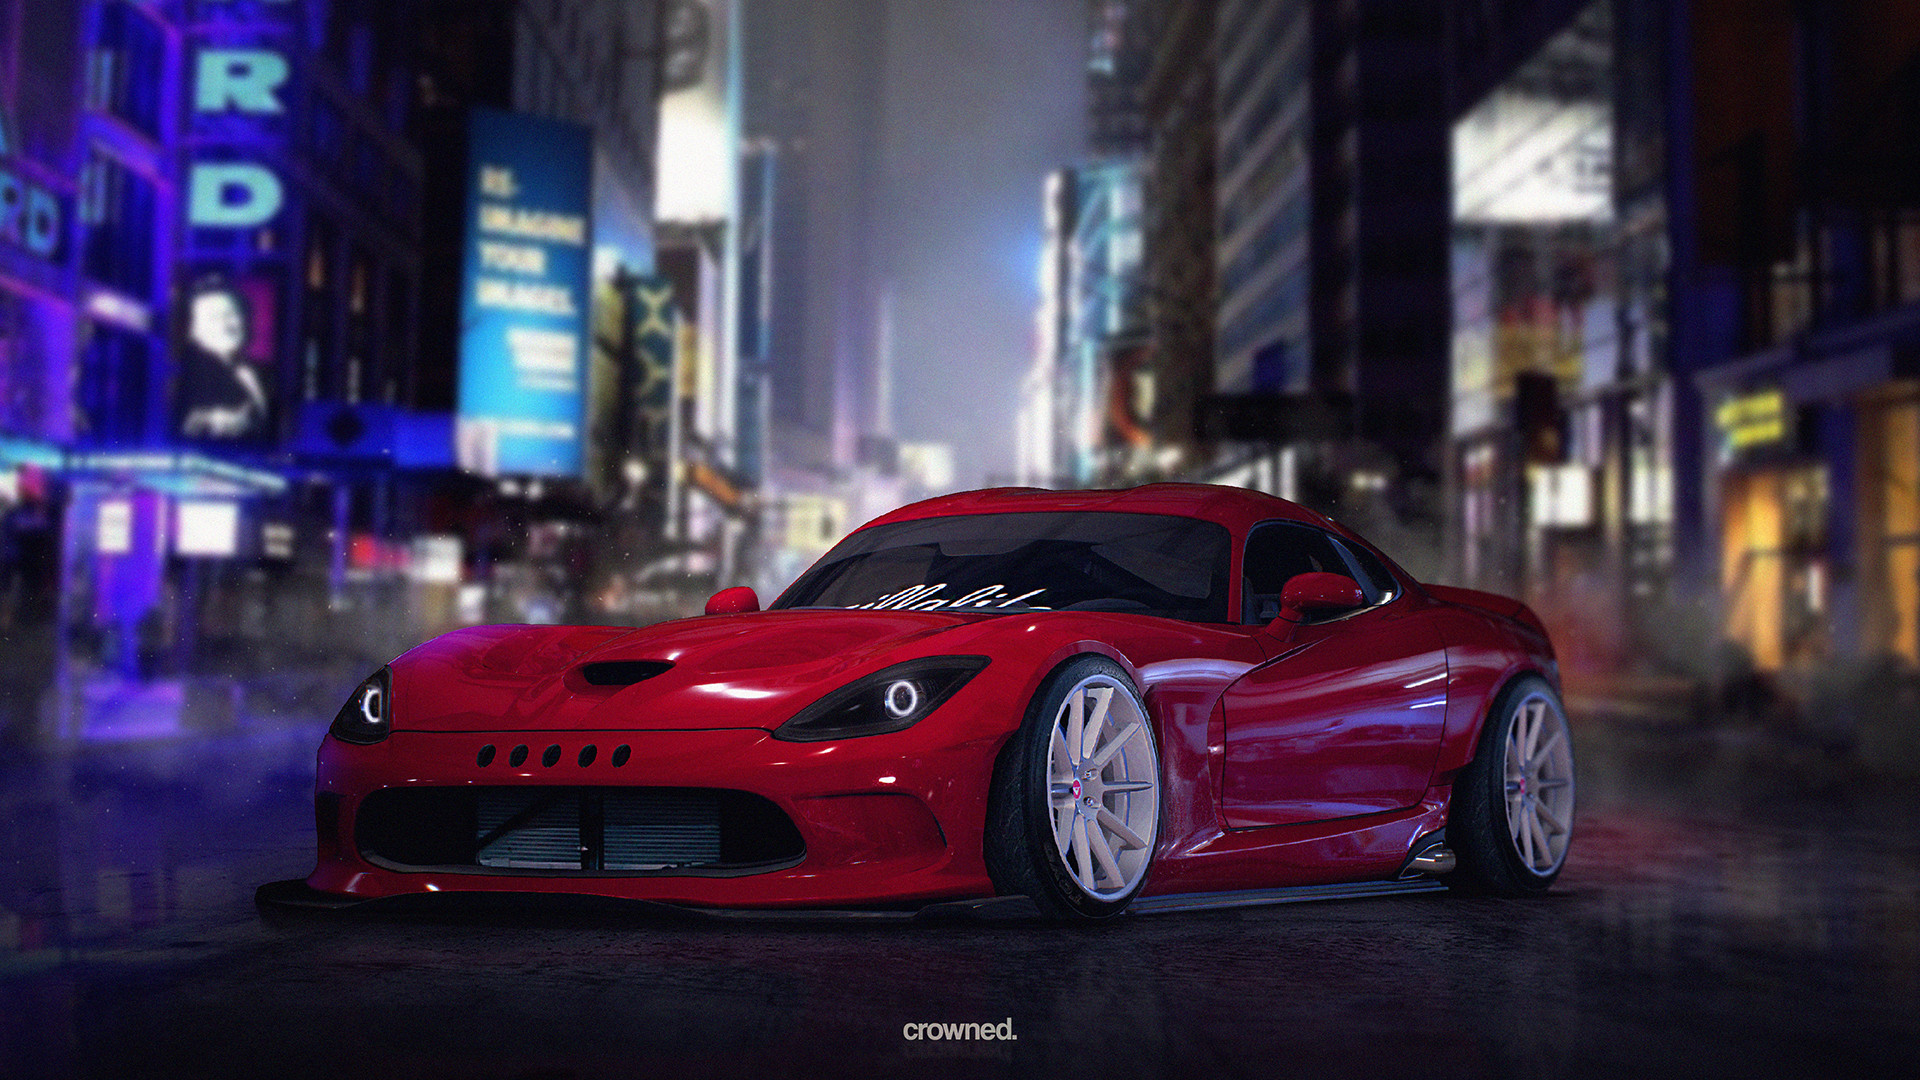 Res: 1920x1080, Rocket Bunny Dodge Viper (NFS 2015 + Photoshop / Virtual Tuning / Speed Art)